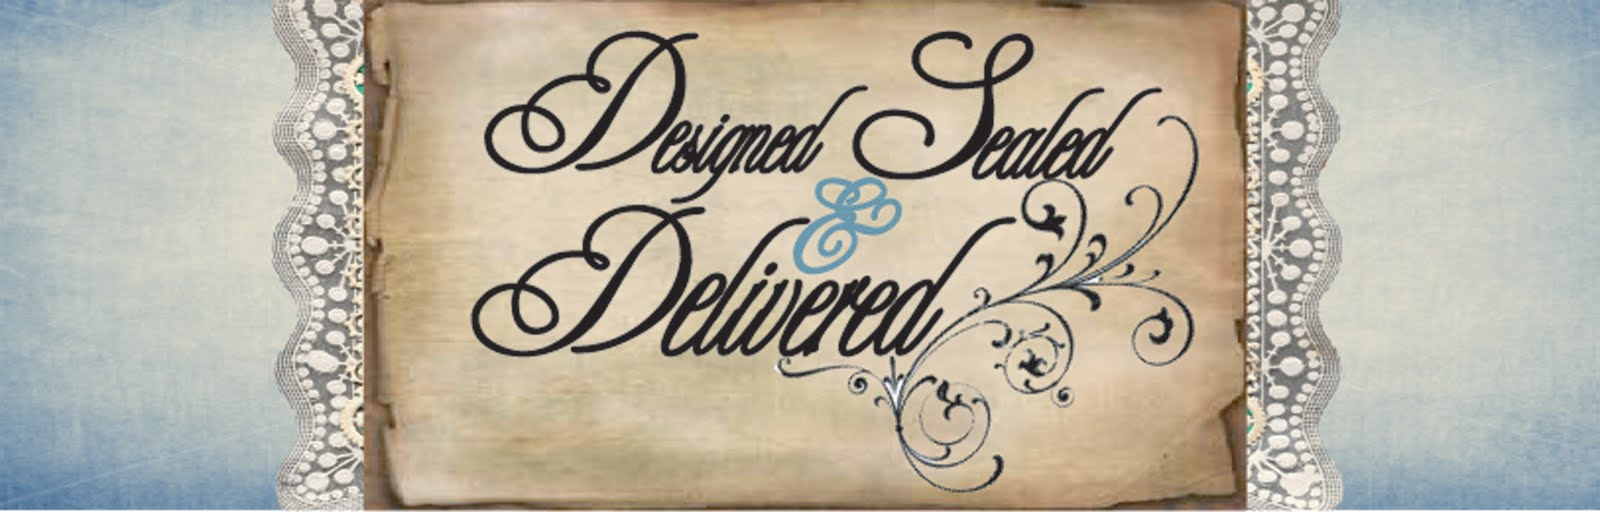 Designed Sealed and Delivered